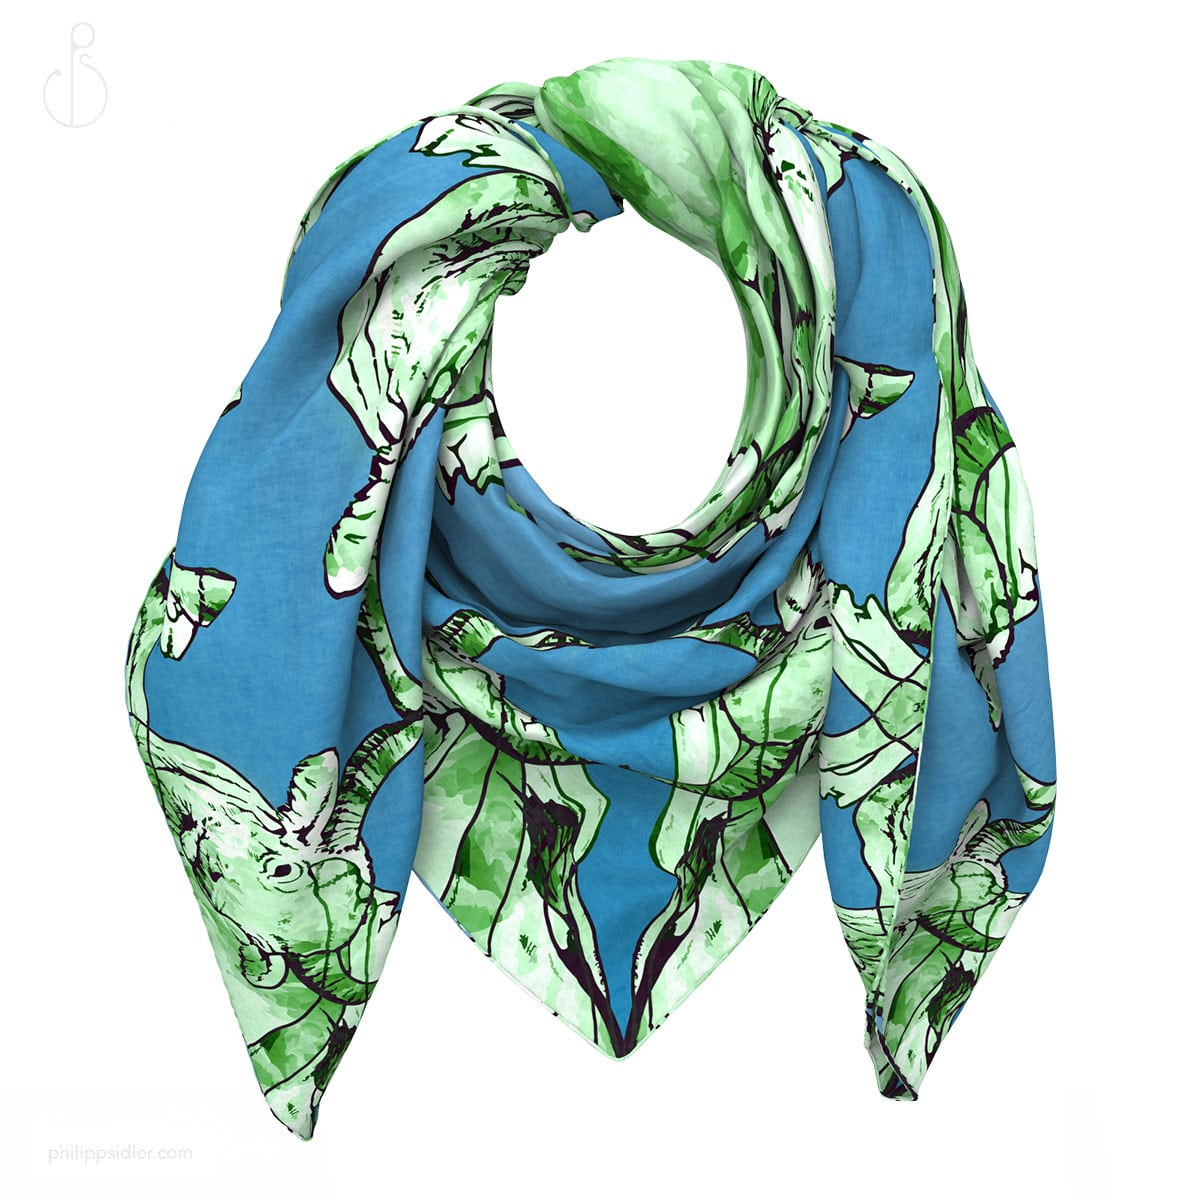 Buffalo-Thrill-scarf-circle-philippsidler